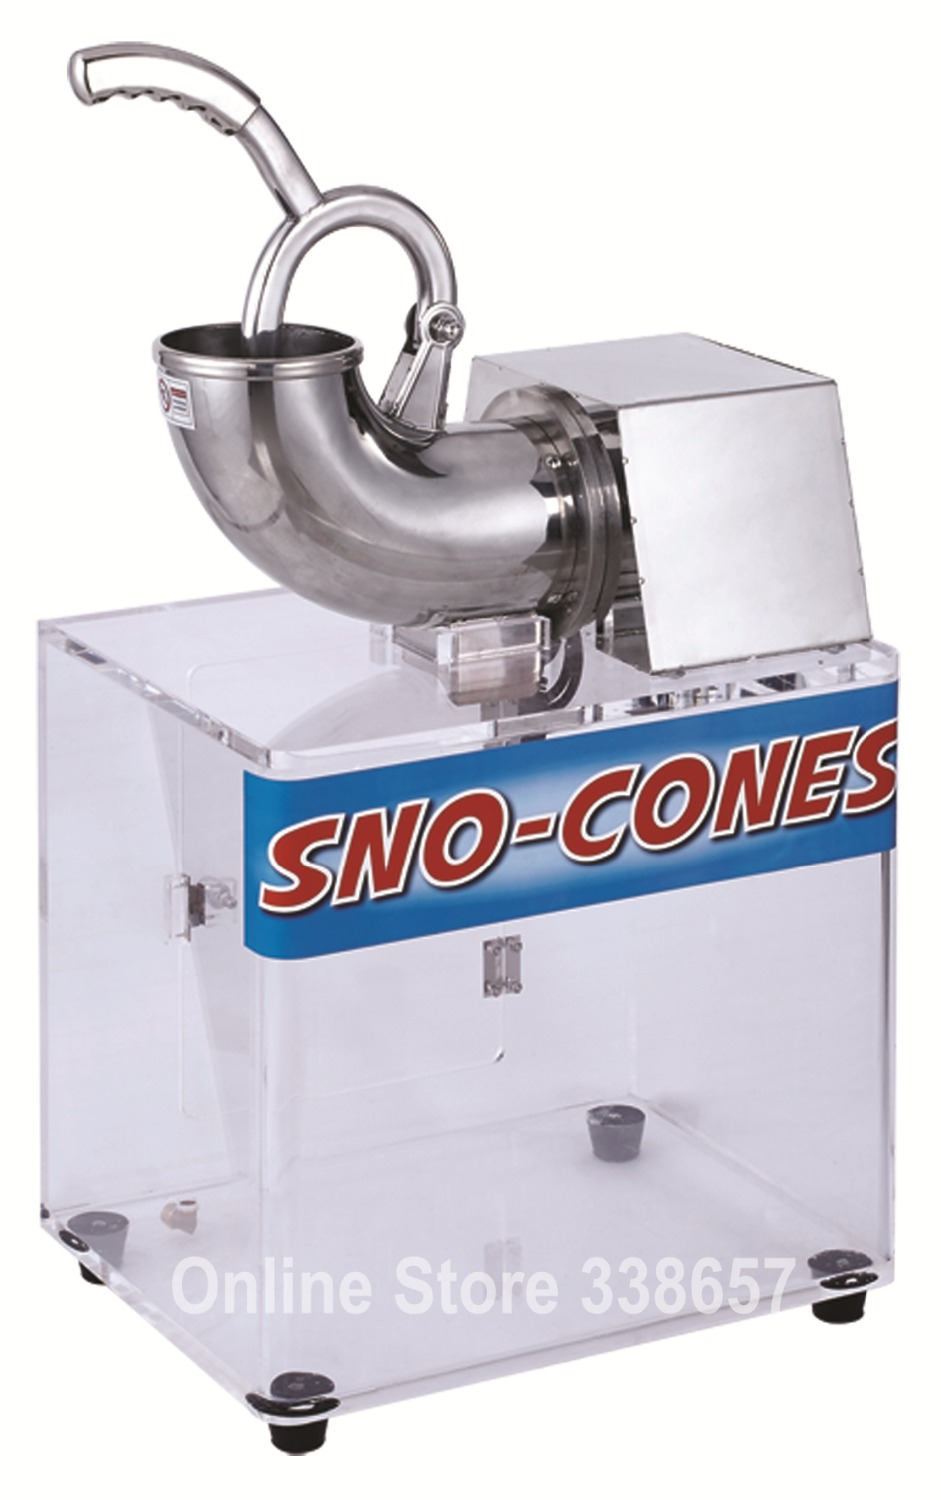 commercial restaurant electric ice crusher ice shaving machine snow cone maker - Commercial Snow Cone Machine